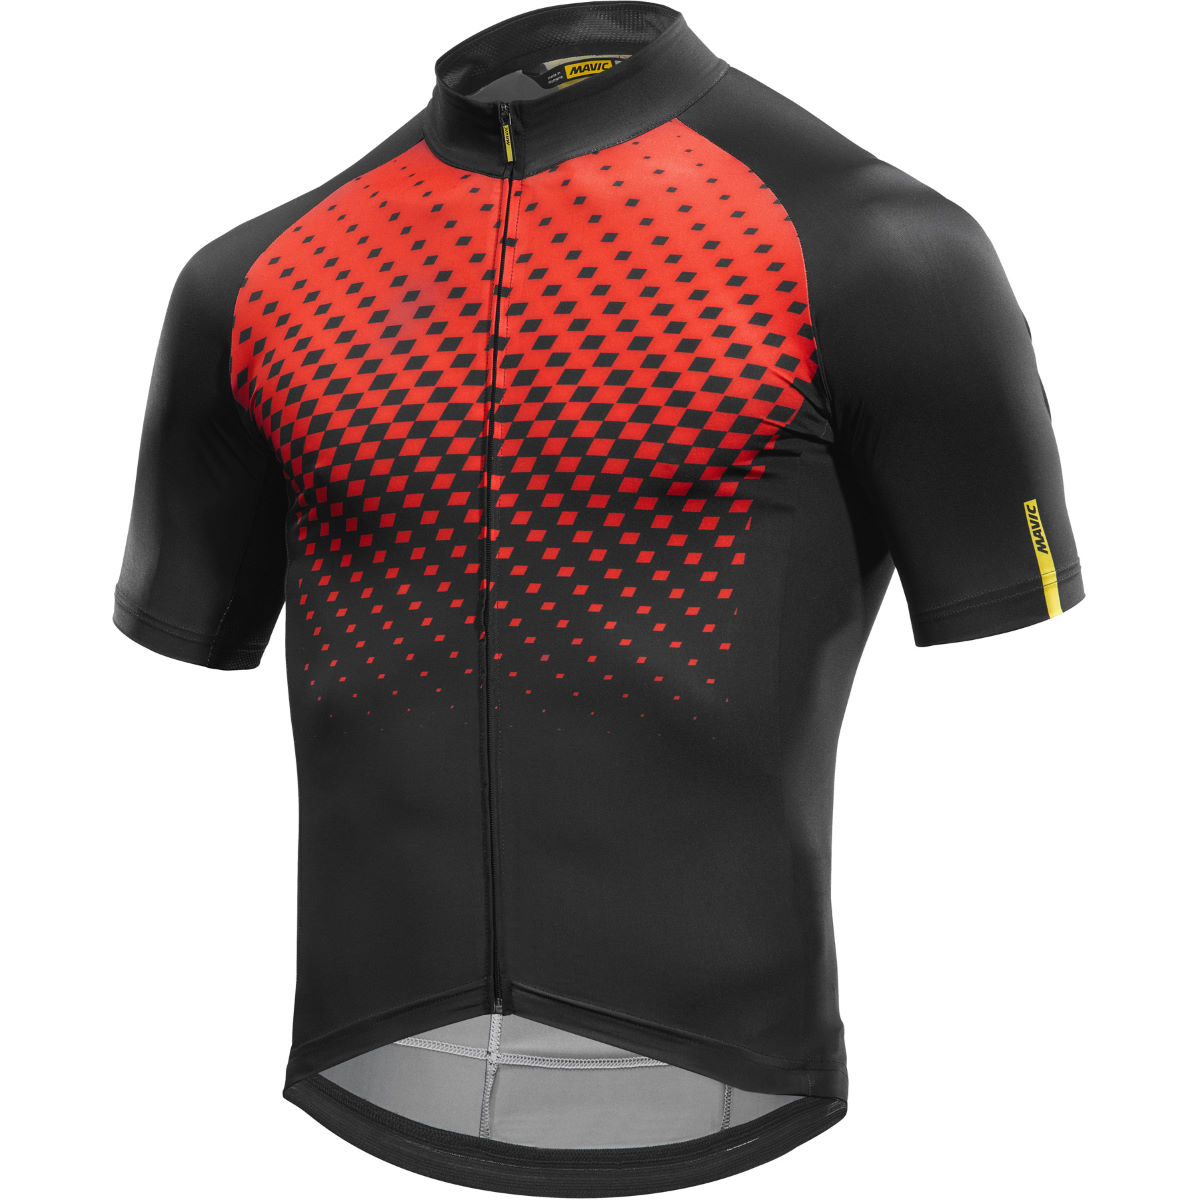 Maillot Mavic Cosmic Graphic - S Fiery Red/Black Maillots vélo à manches courtes